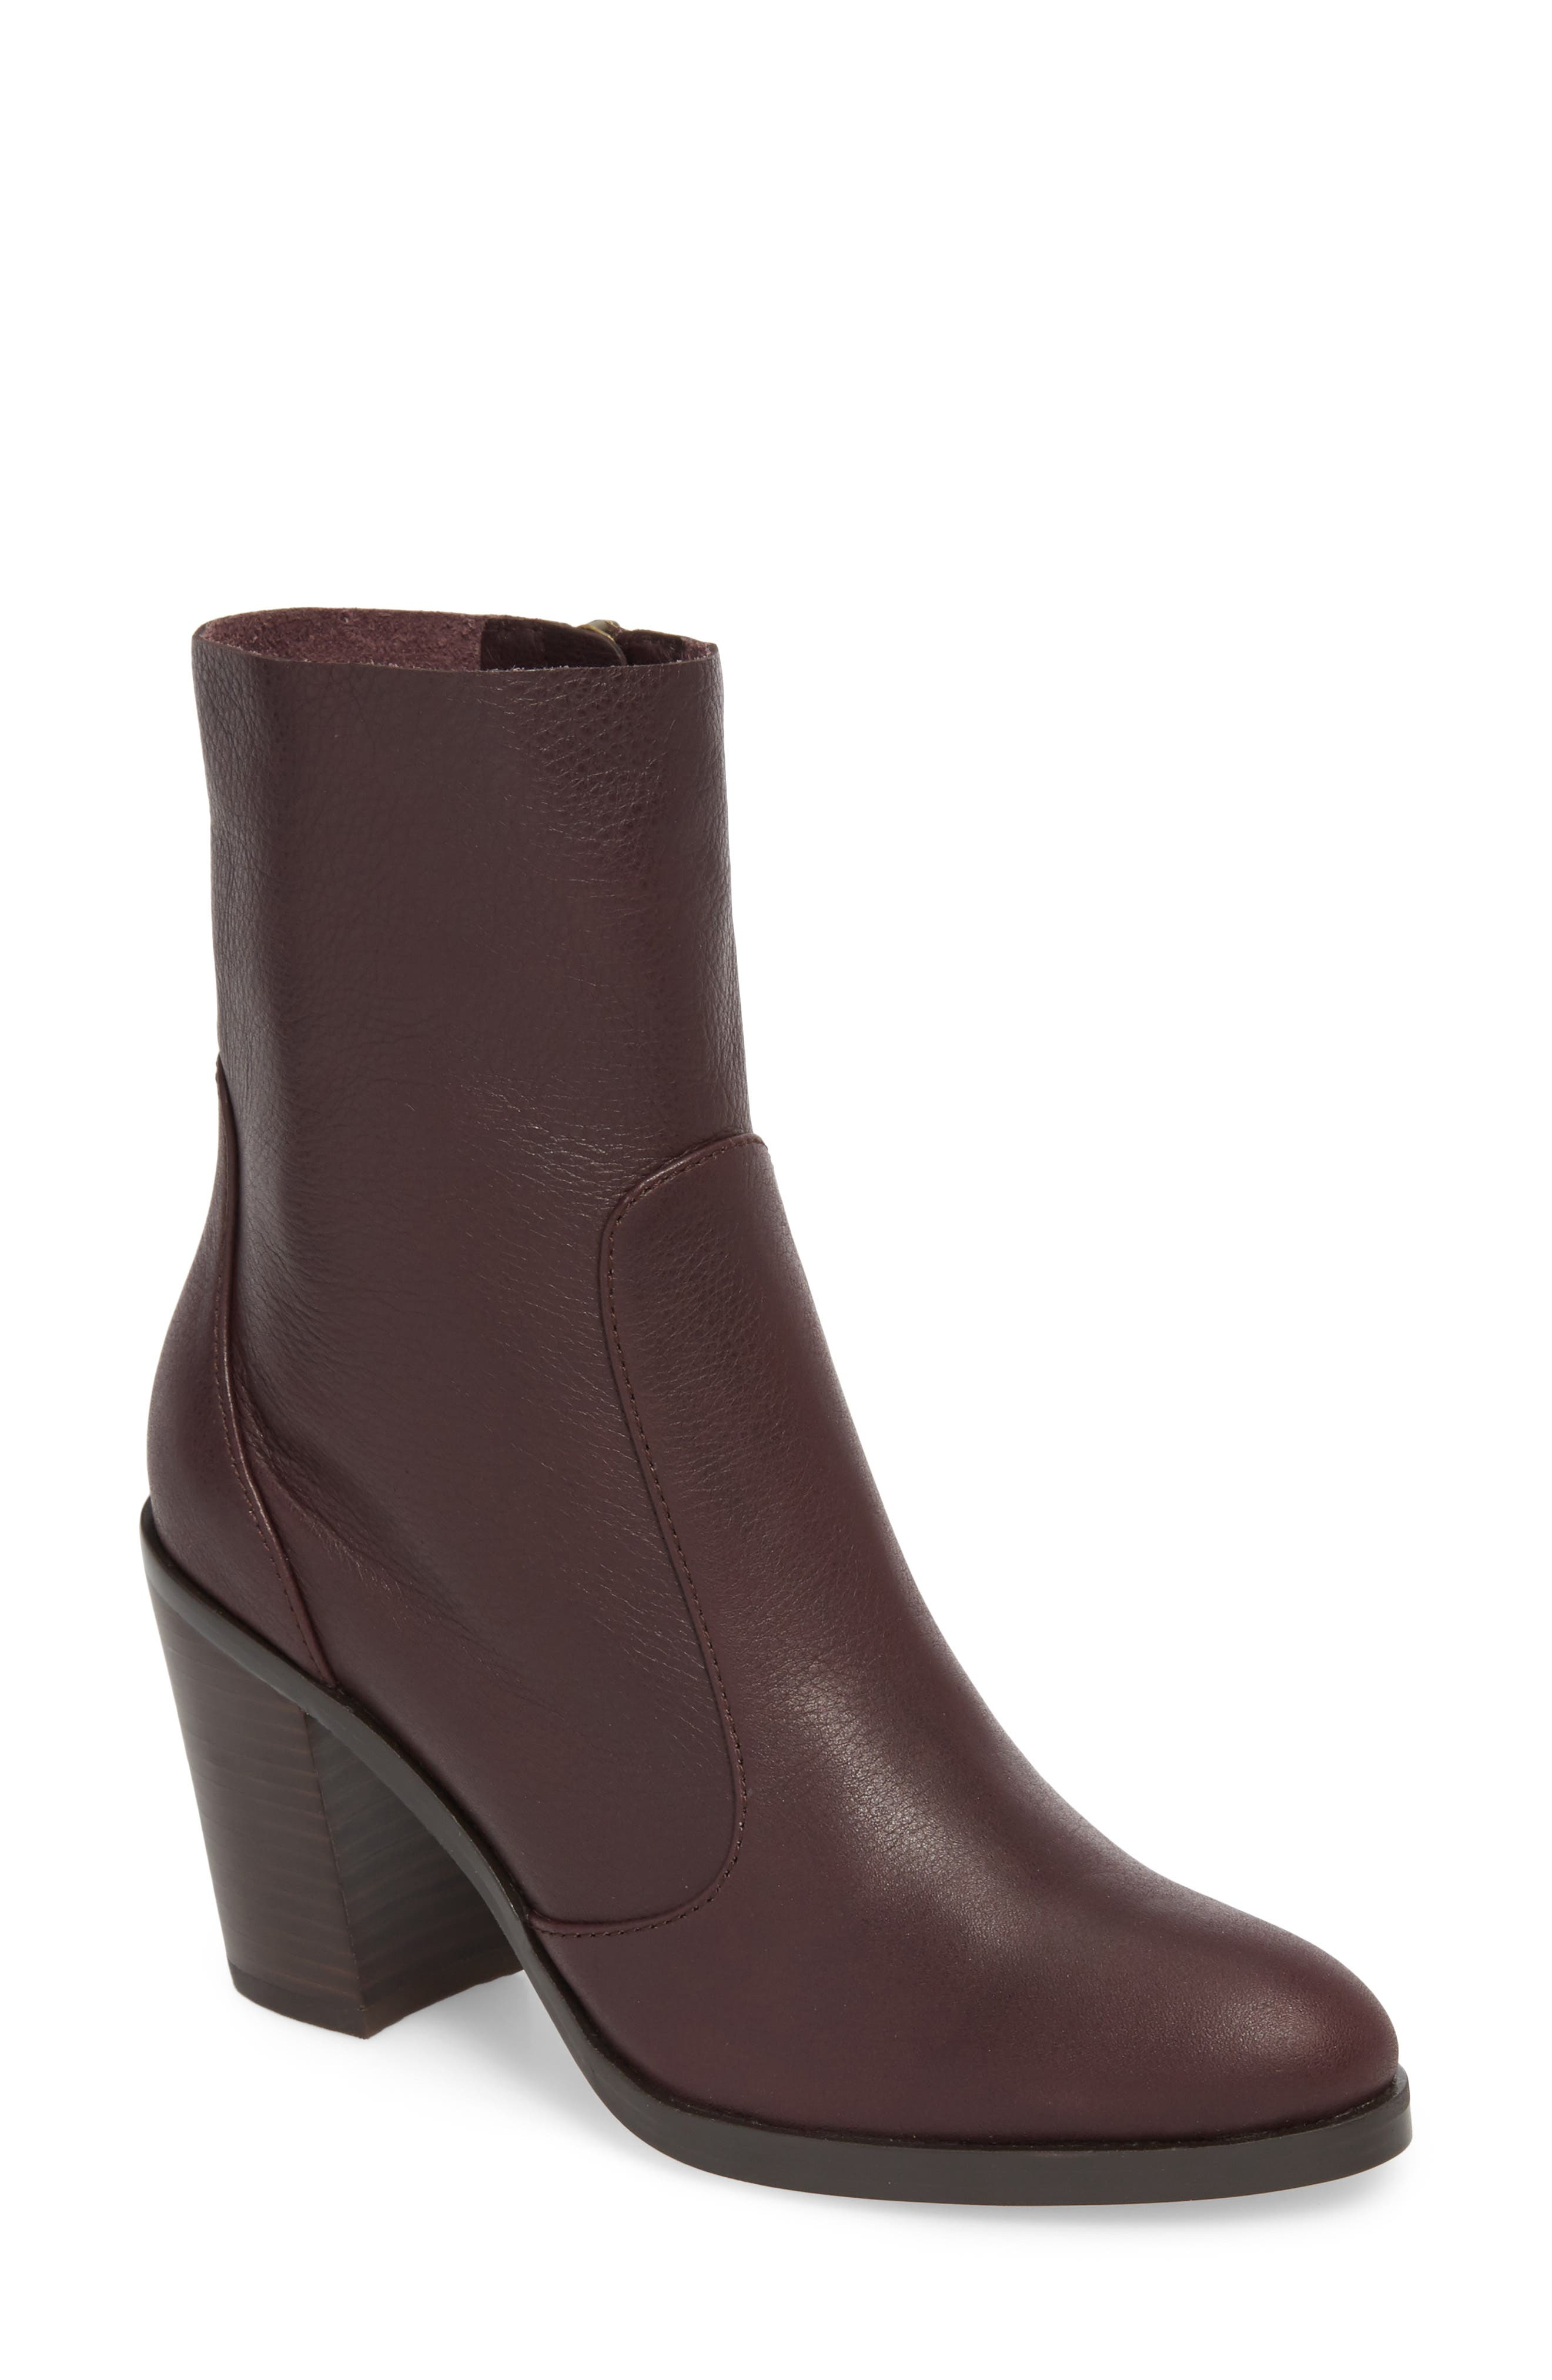 Roselyn Bootie,                         Main,                         color, DEEP PLUM LEATHER